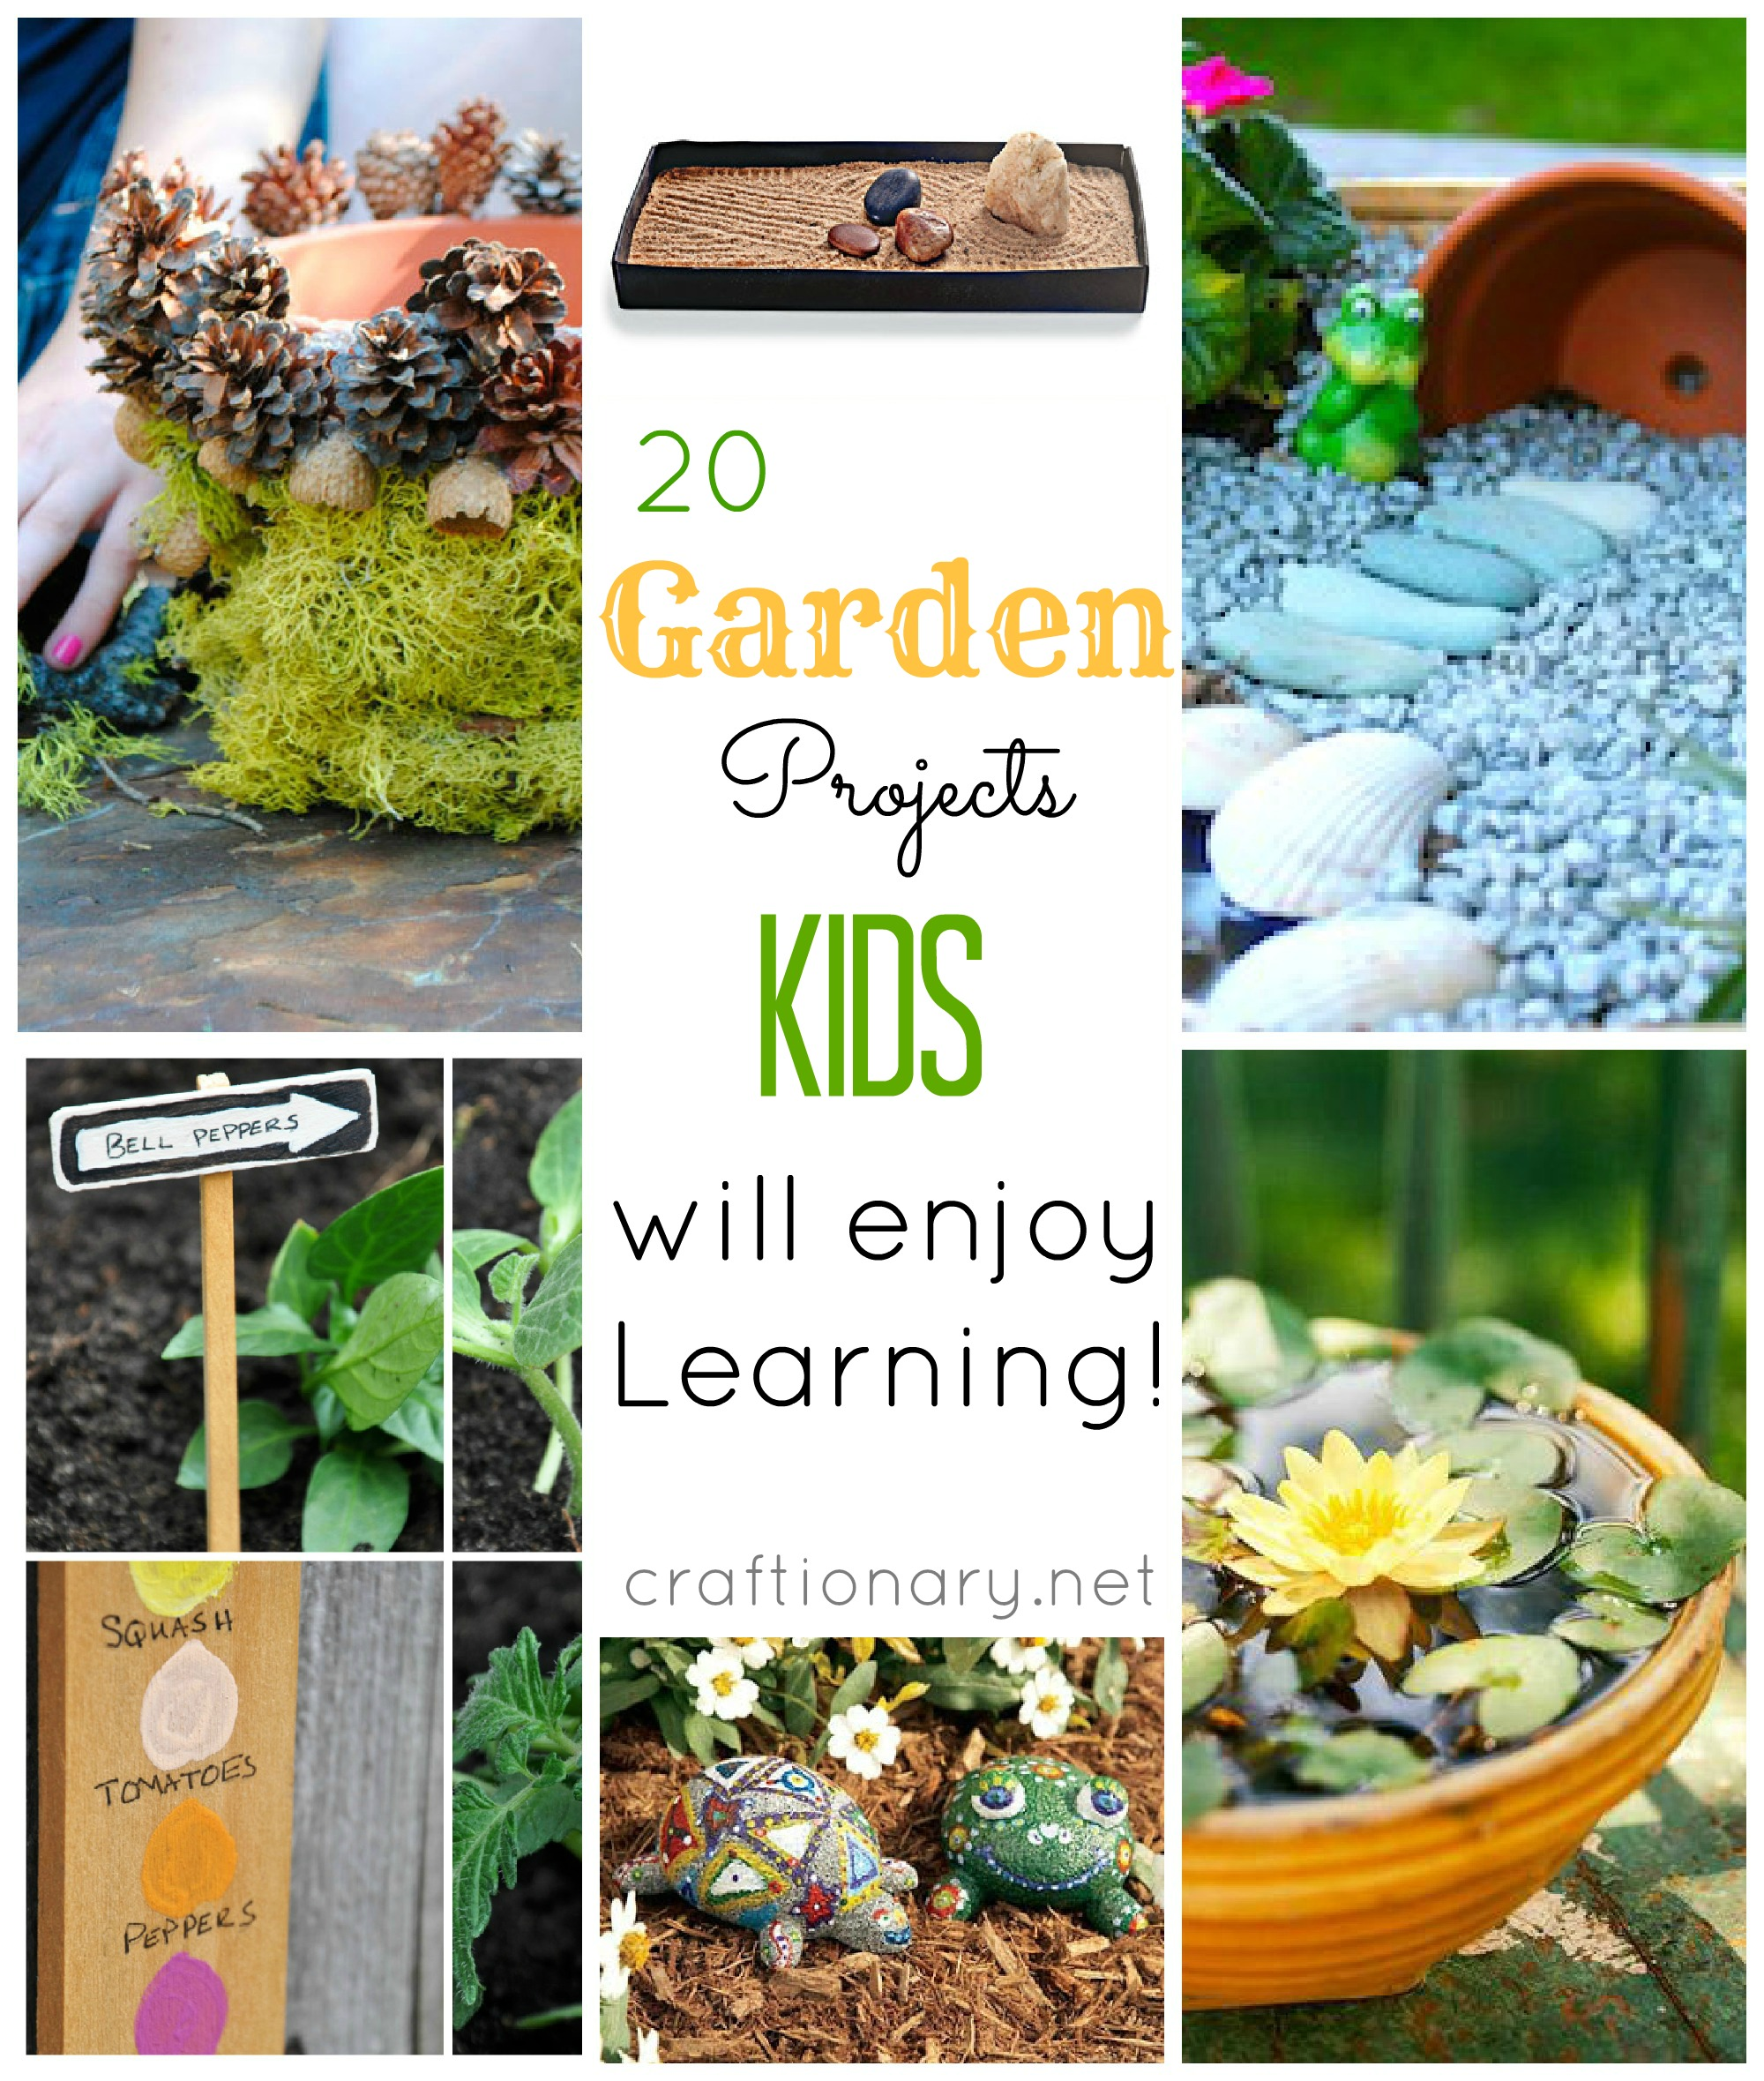 Craftionary Kids garden ideas